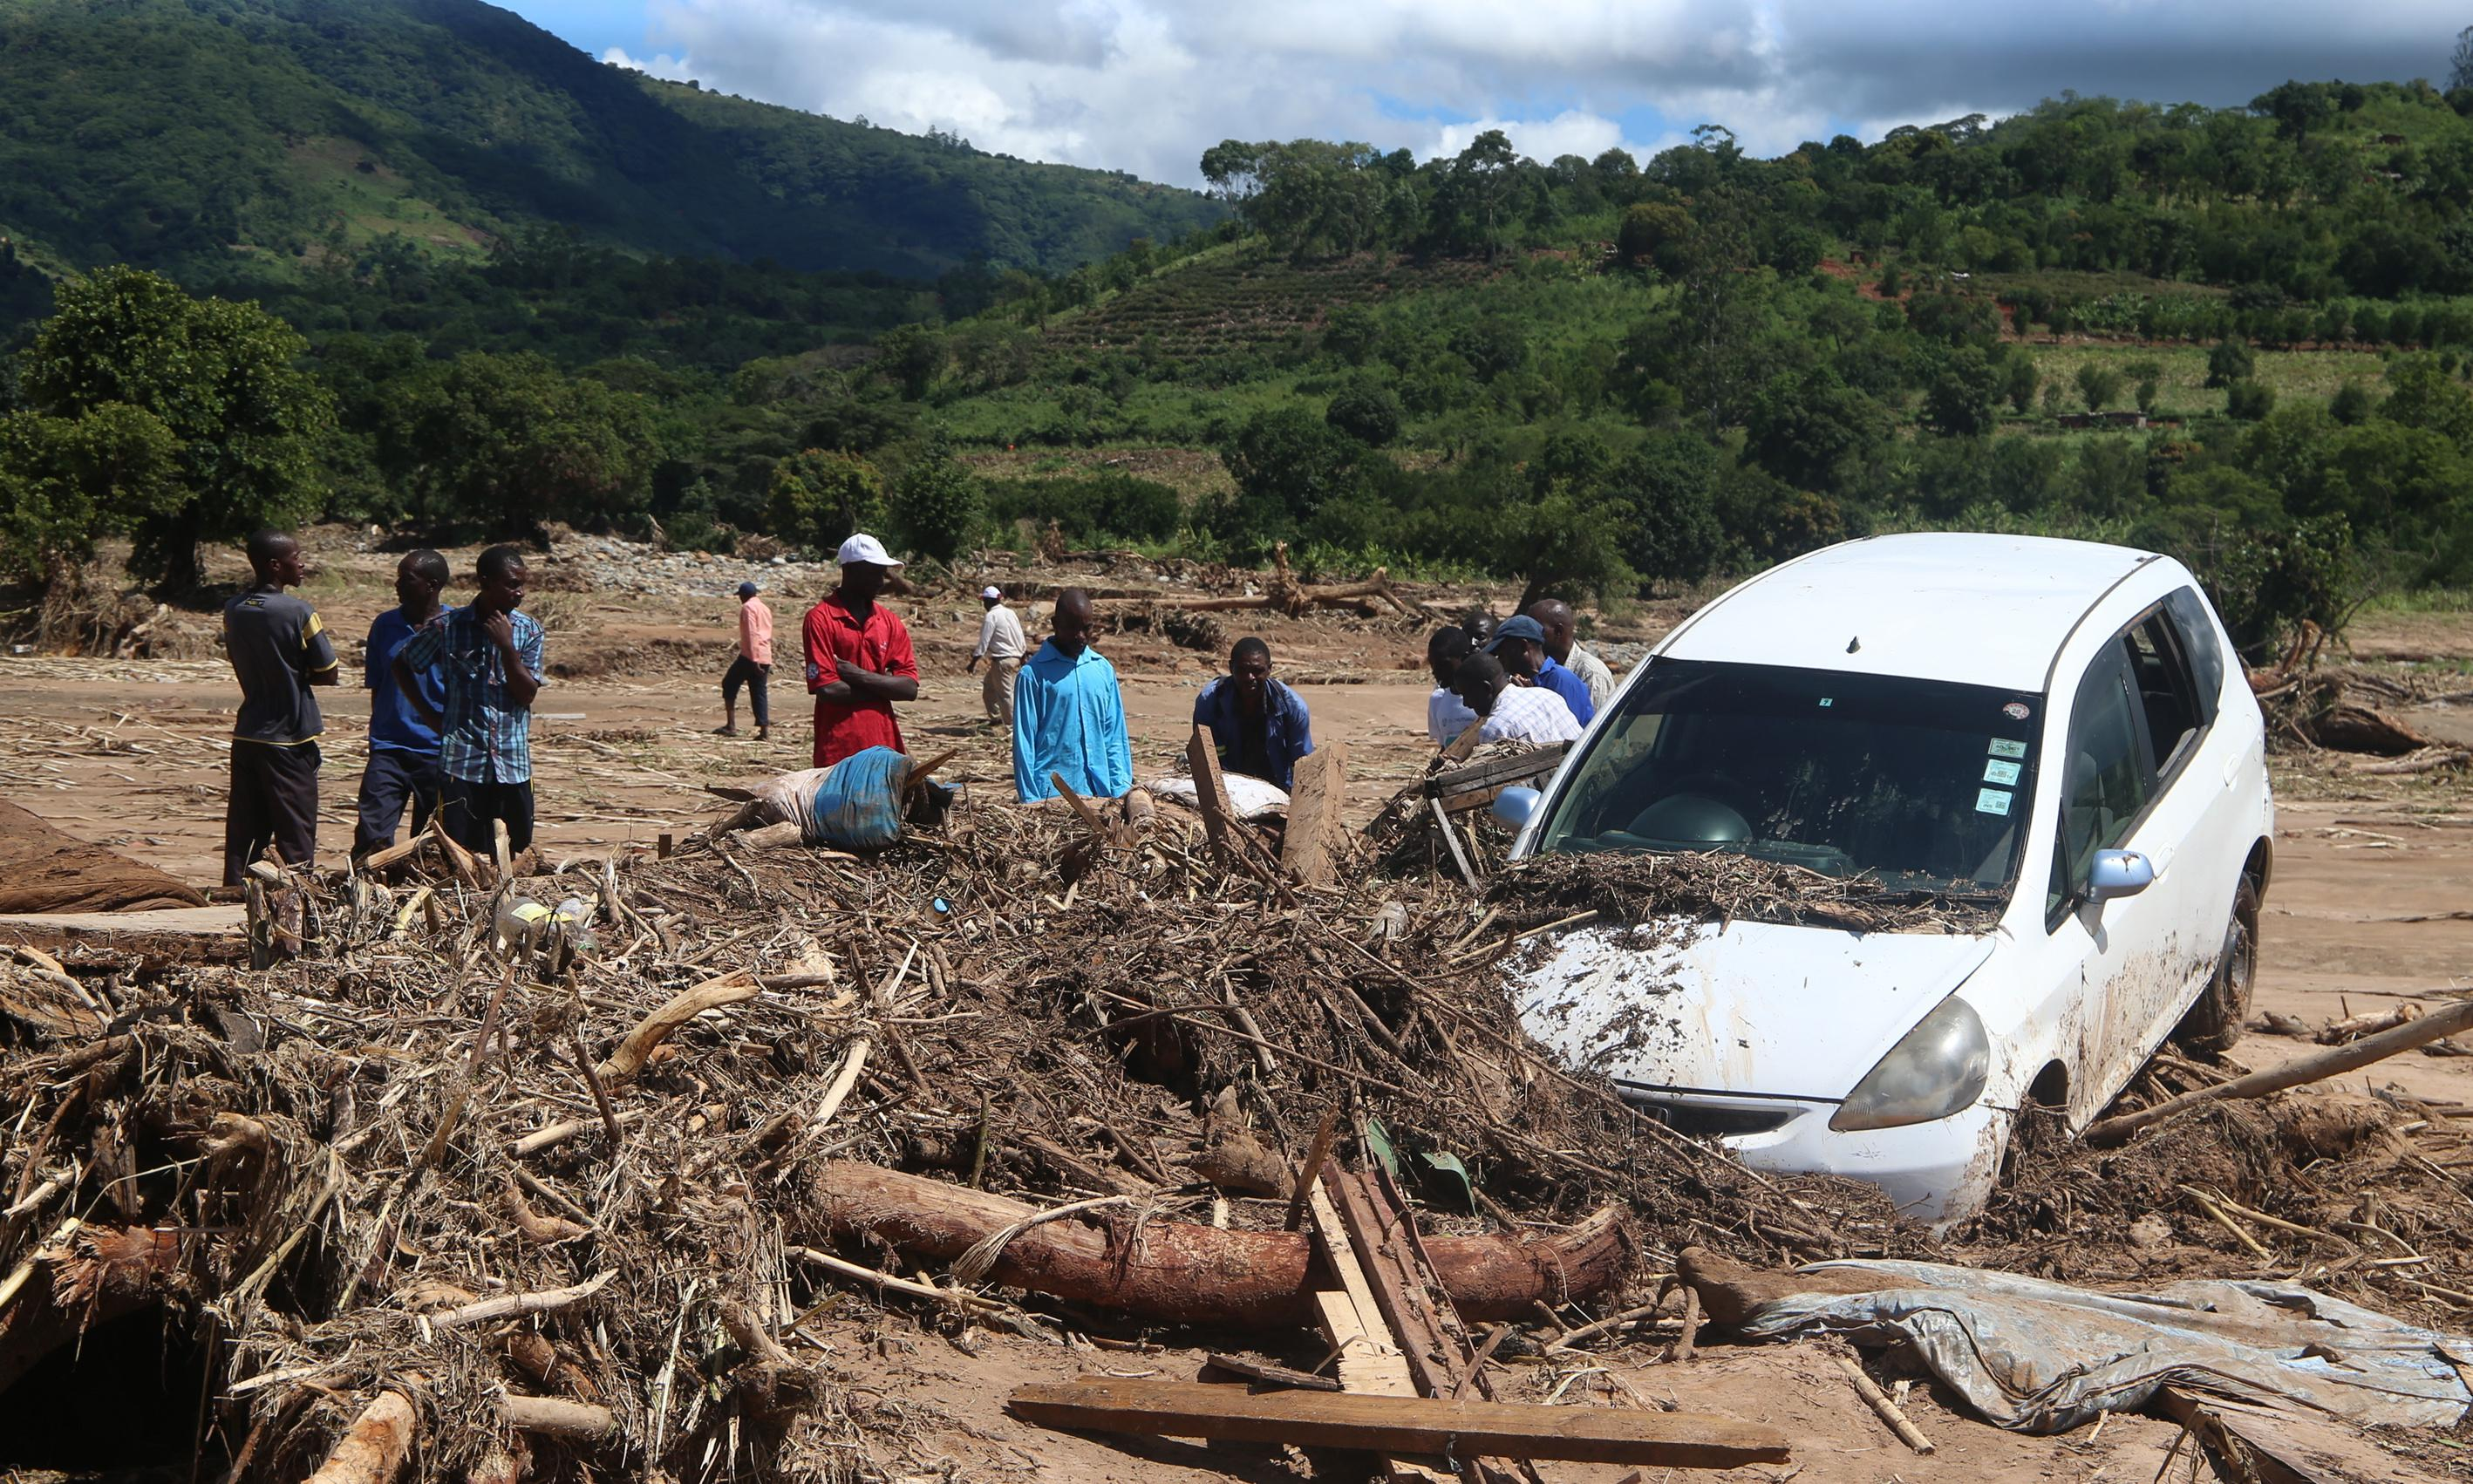 Cyclone Idai witness describes seeing hundreds of bodies by roadside